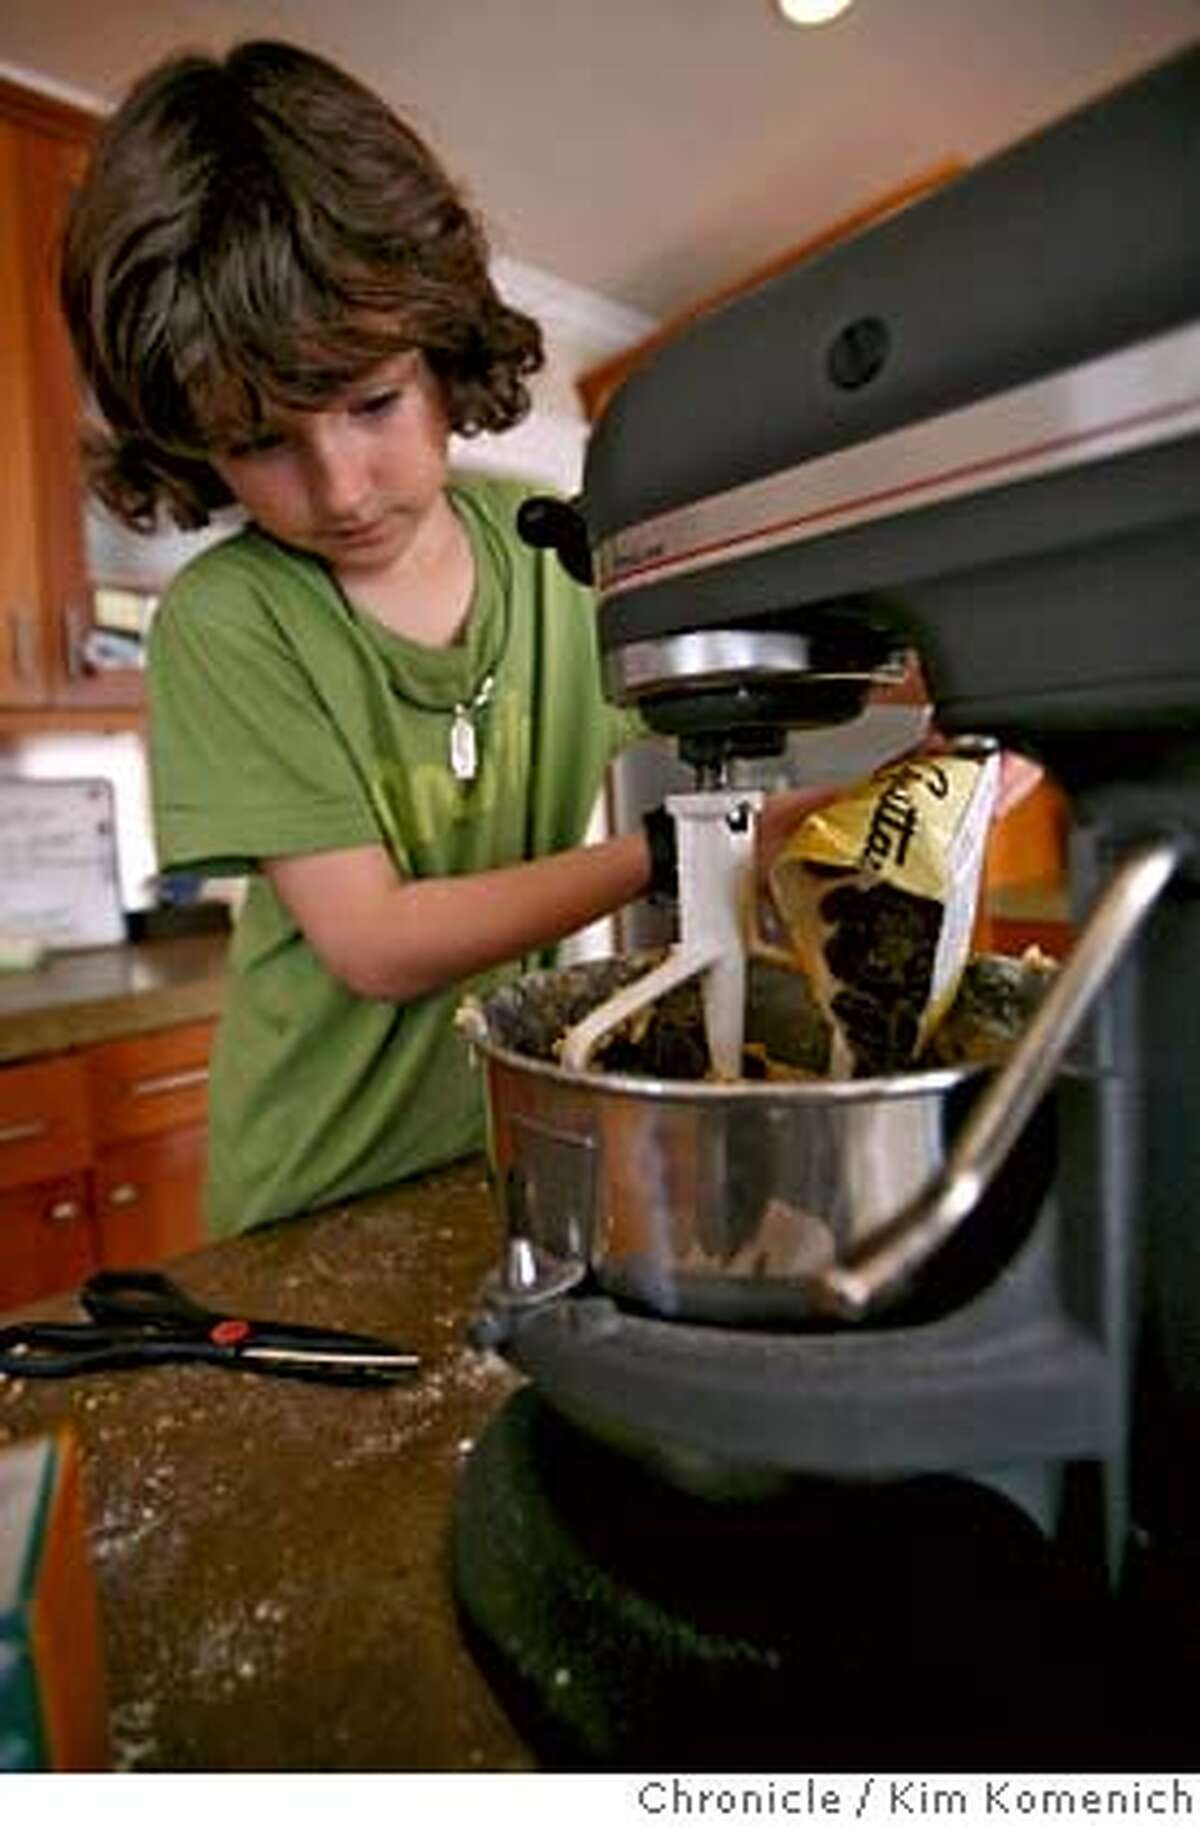 Mickey Hirigoyen, 8, prepares chocolate chip cookies February 20, 2008 in Mill Valley. Mickey is the son of Piperade chef Gerald Hirigoyen. Photo by Kim Komenich/San Francisco Chronicle MANDATORY CREDIT FOR PHOTOG AND SAN FRANCISCO CHRONICLE. NO SALES- MAGS OUT.